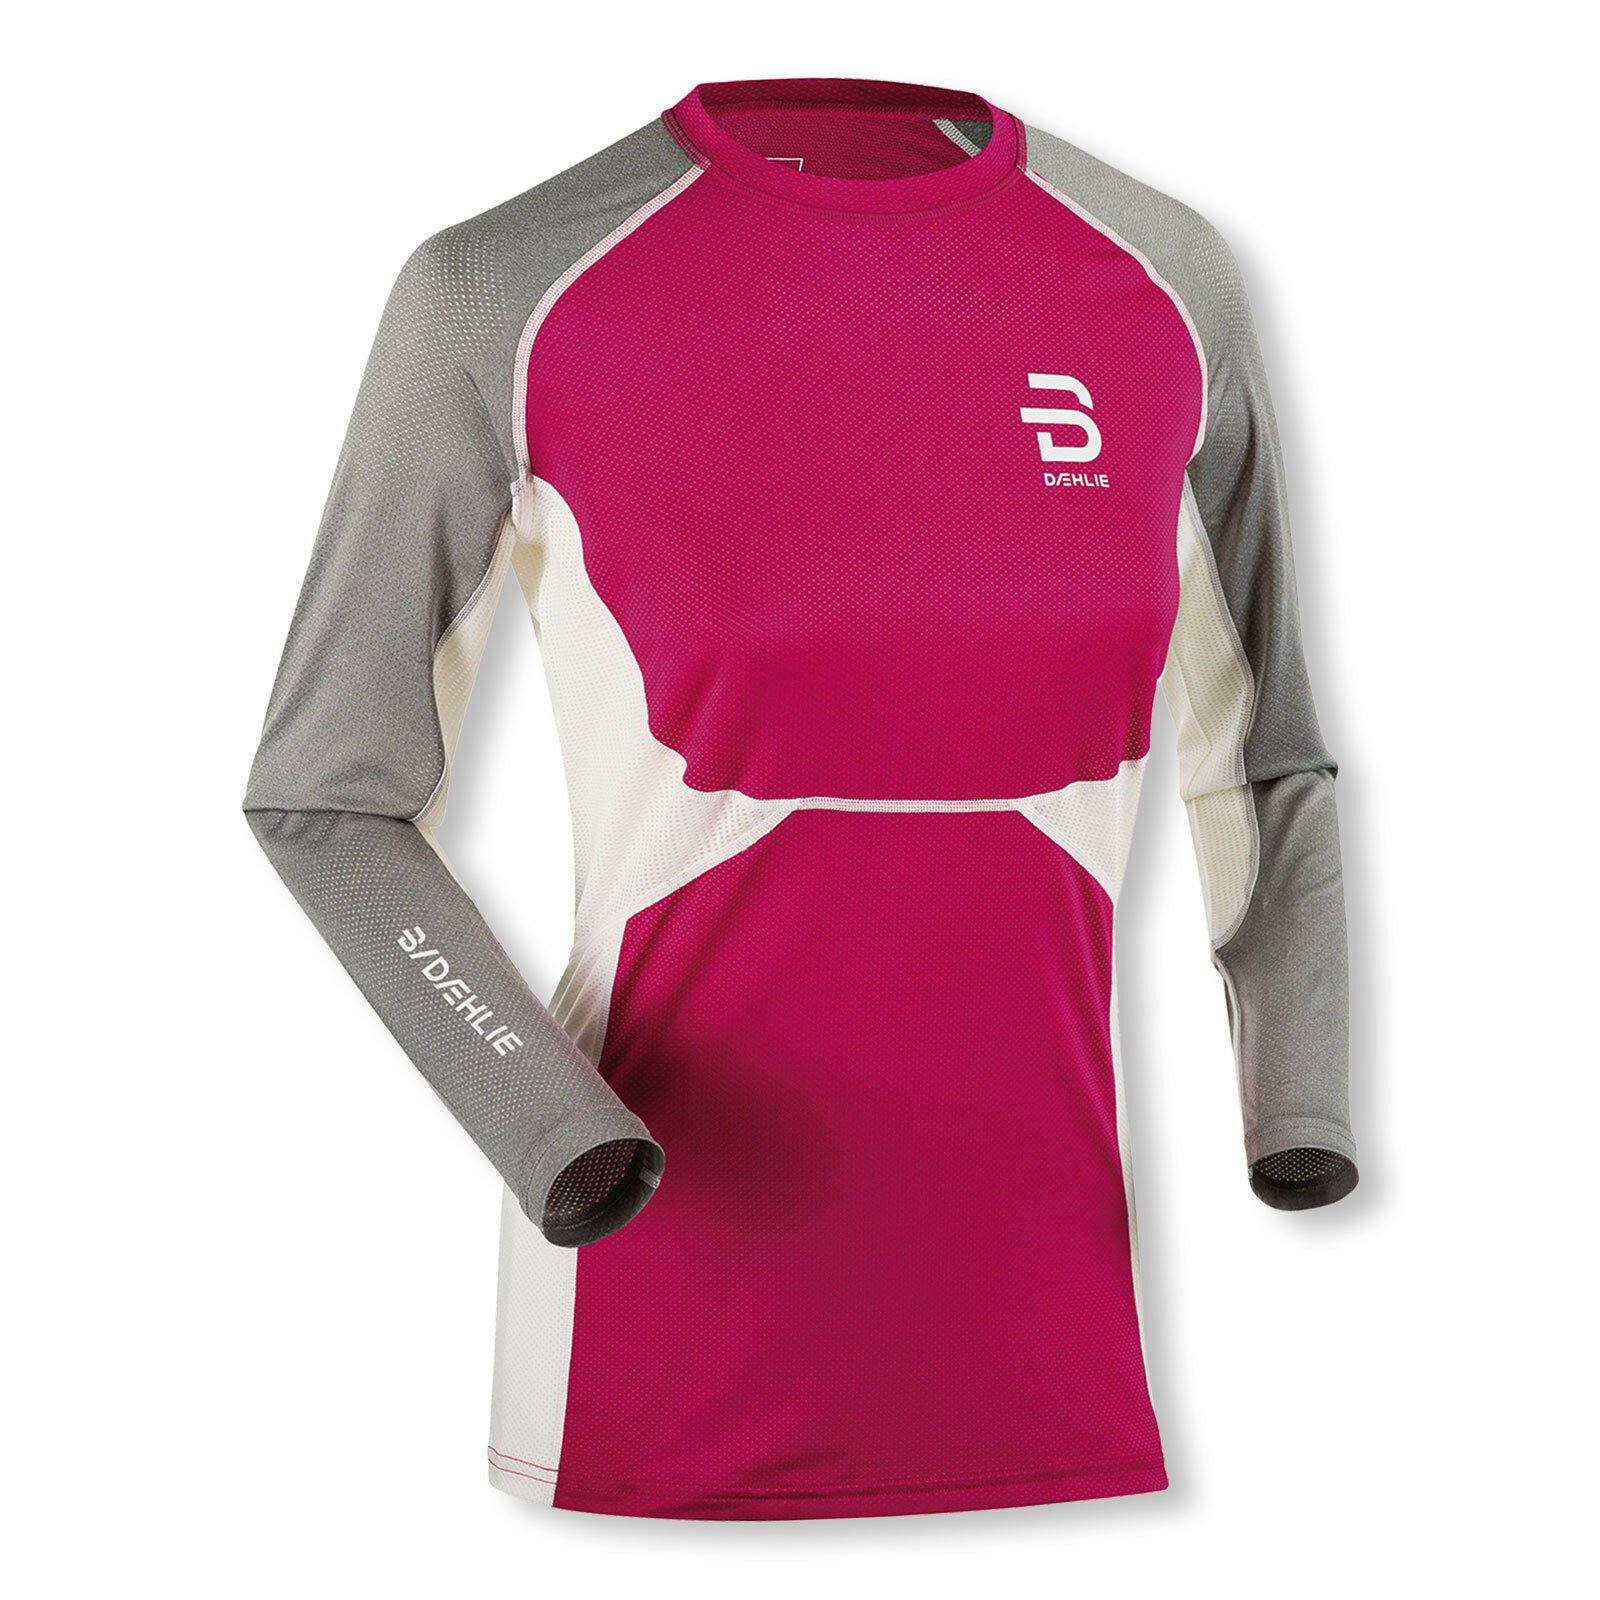 Björn Daehlie DaSie Funktionsshirt Langarmshirt Training Tech Baselayer Langlauf